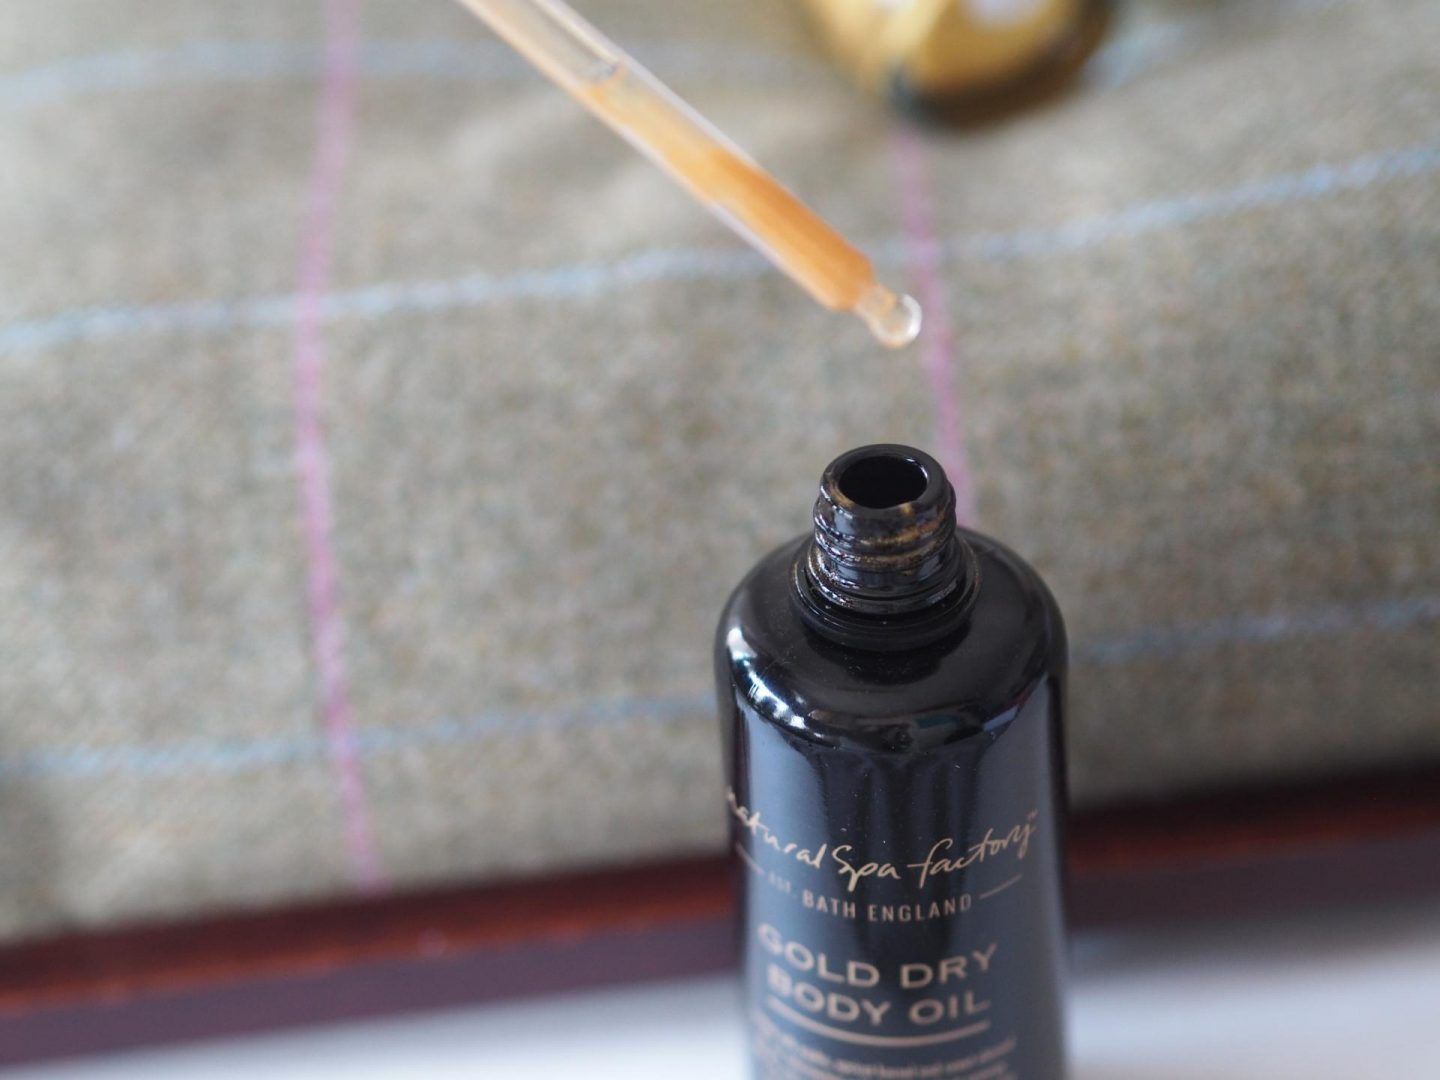 the-natural-spa-factory_spa-at-home_dry-body-oil-9 The Natural Spa Factory Gold Dry Body Oil